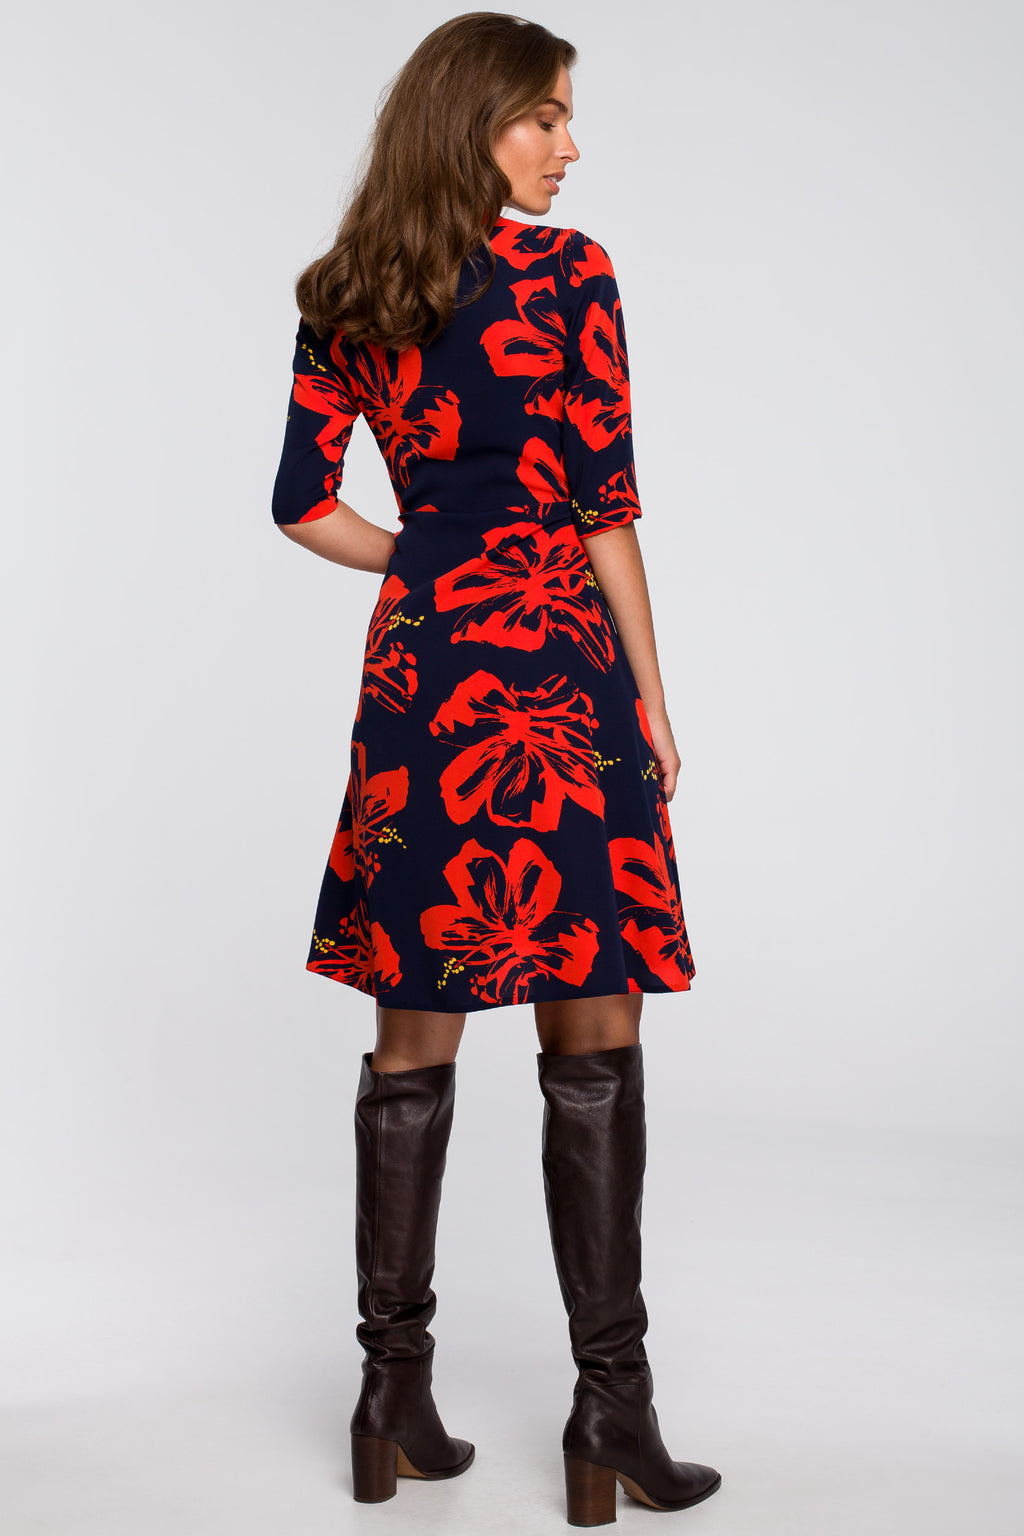 Wrap A Line Navy Blue Dress With Red Floral Print - So Chic Boutique